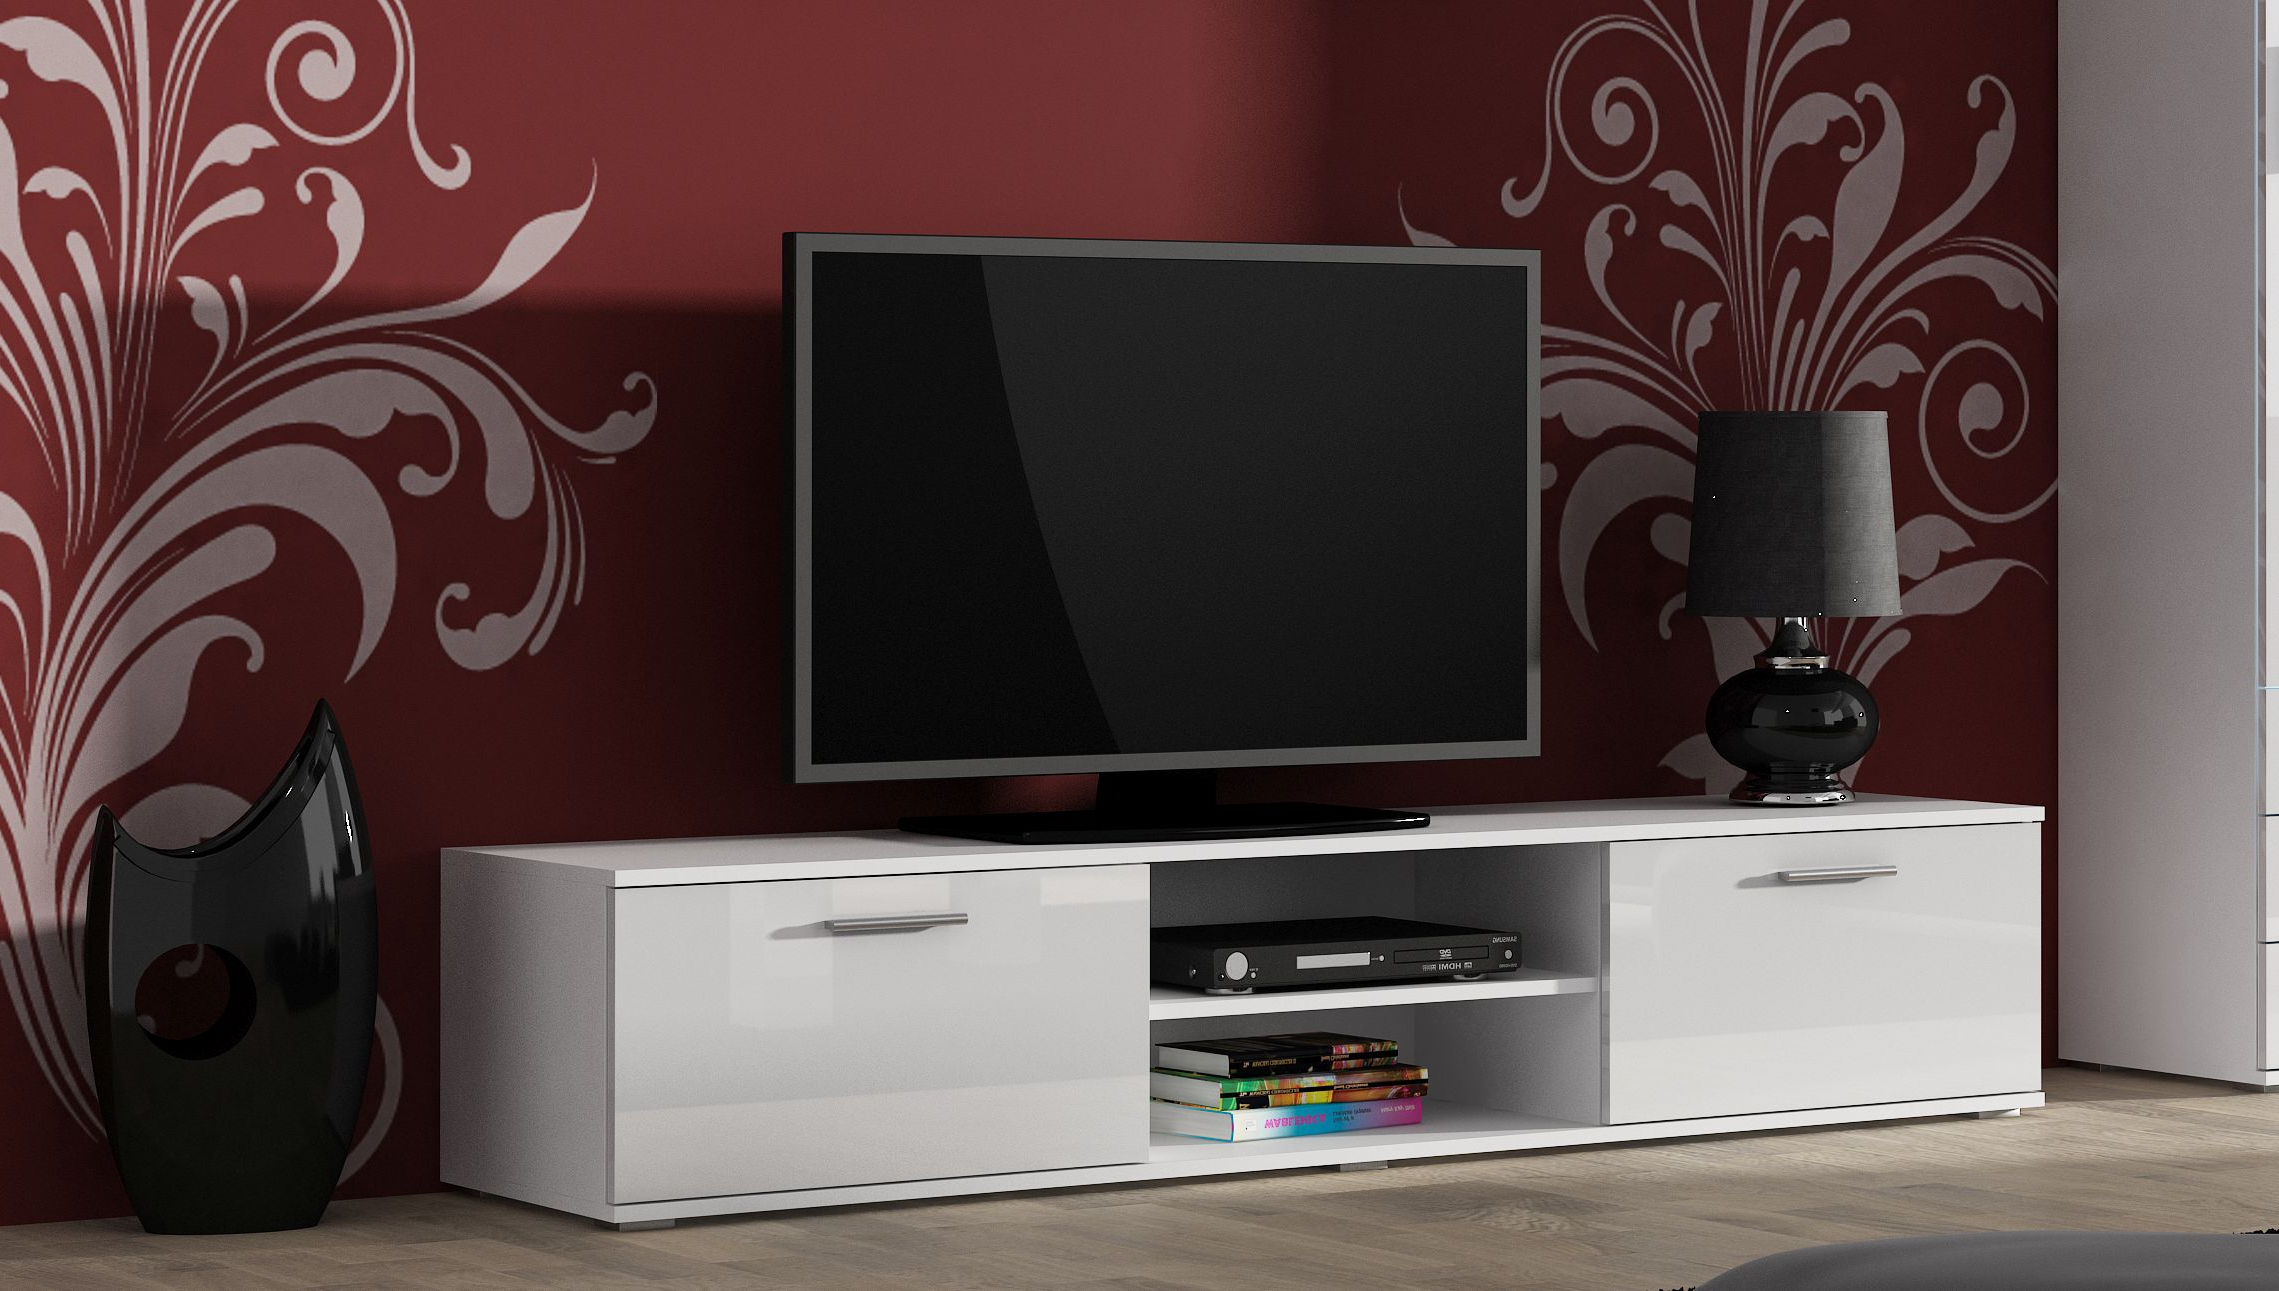 Preferred Soho High Gloss Tv Cabinet With 2 Doors And Shelf – White – Modern Pertaining To Soho Tv Cabinets (View 10 of 20)